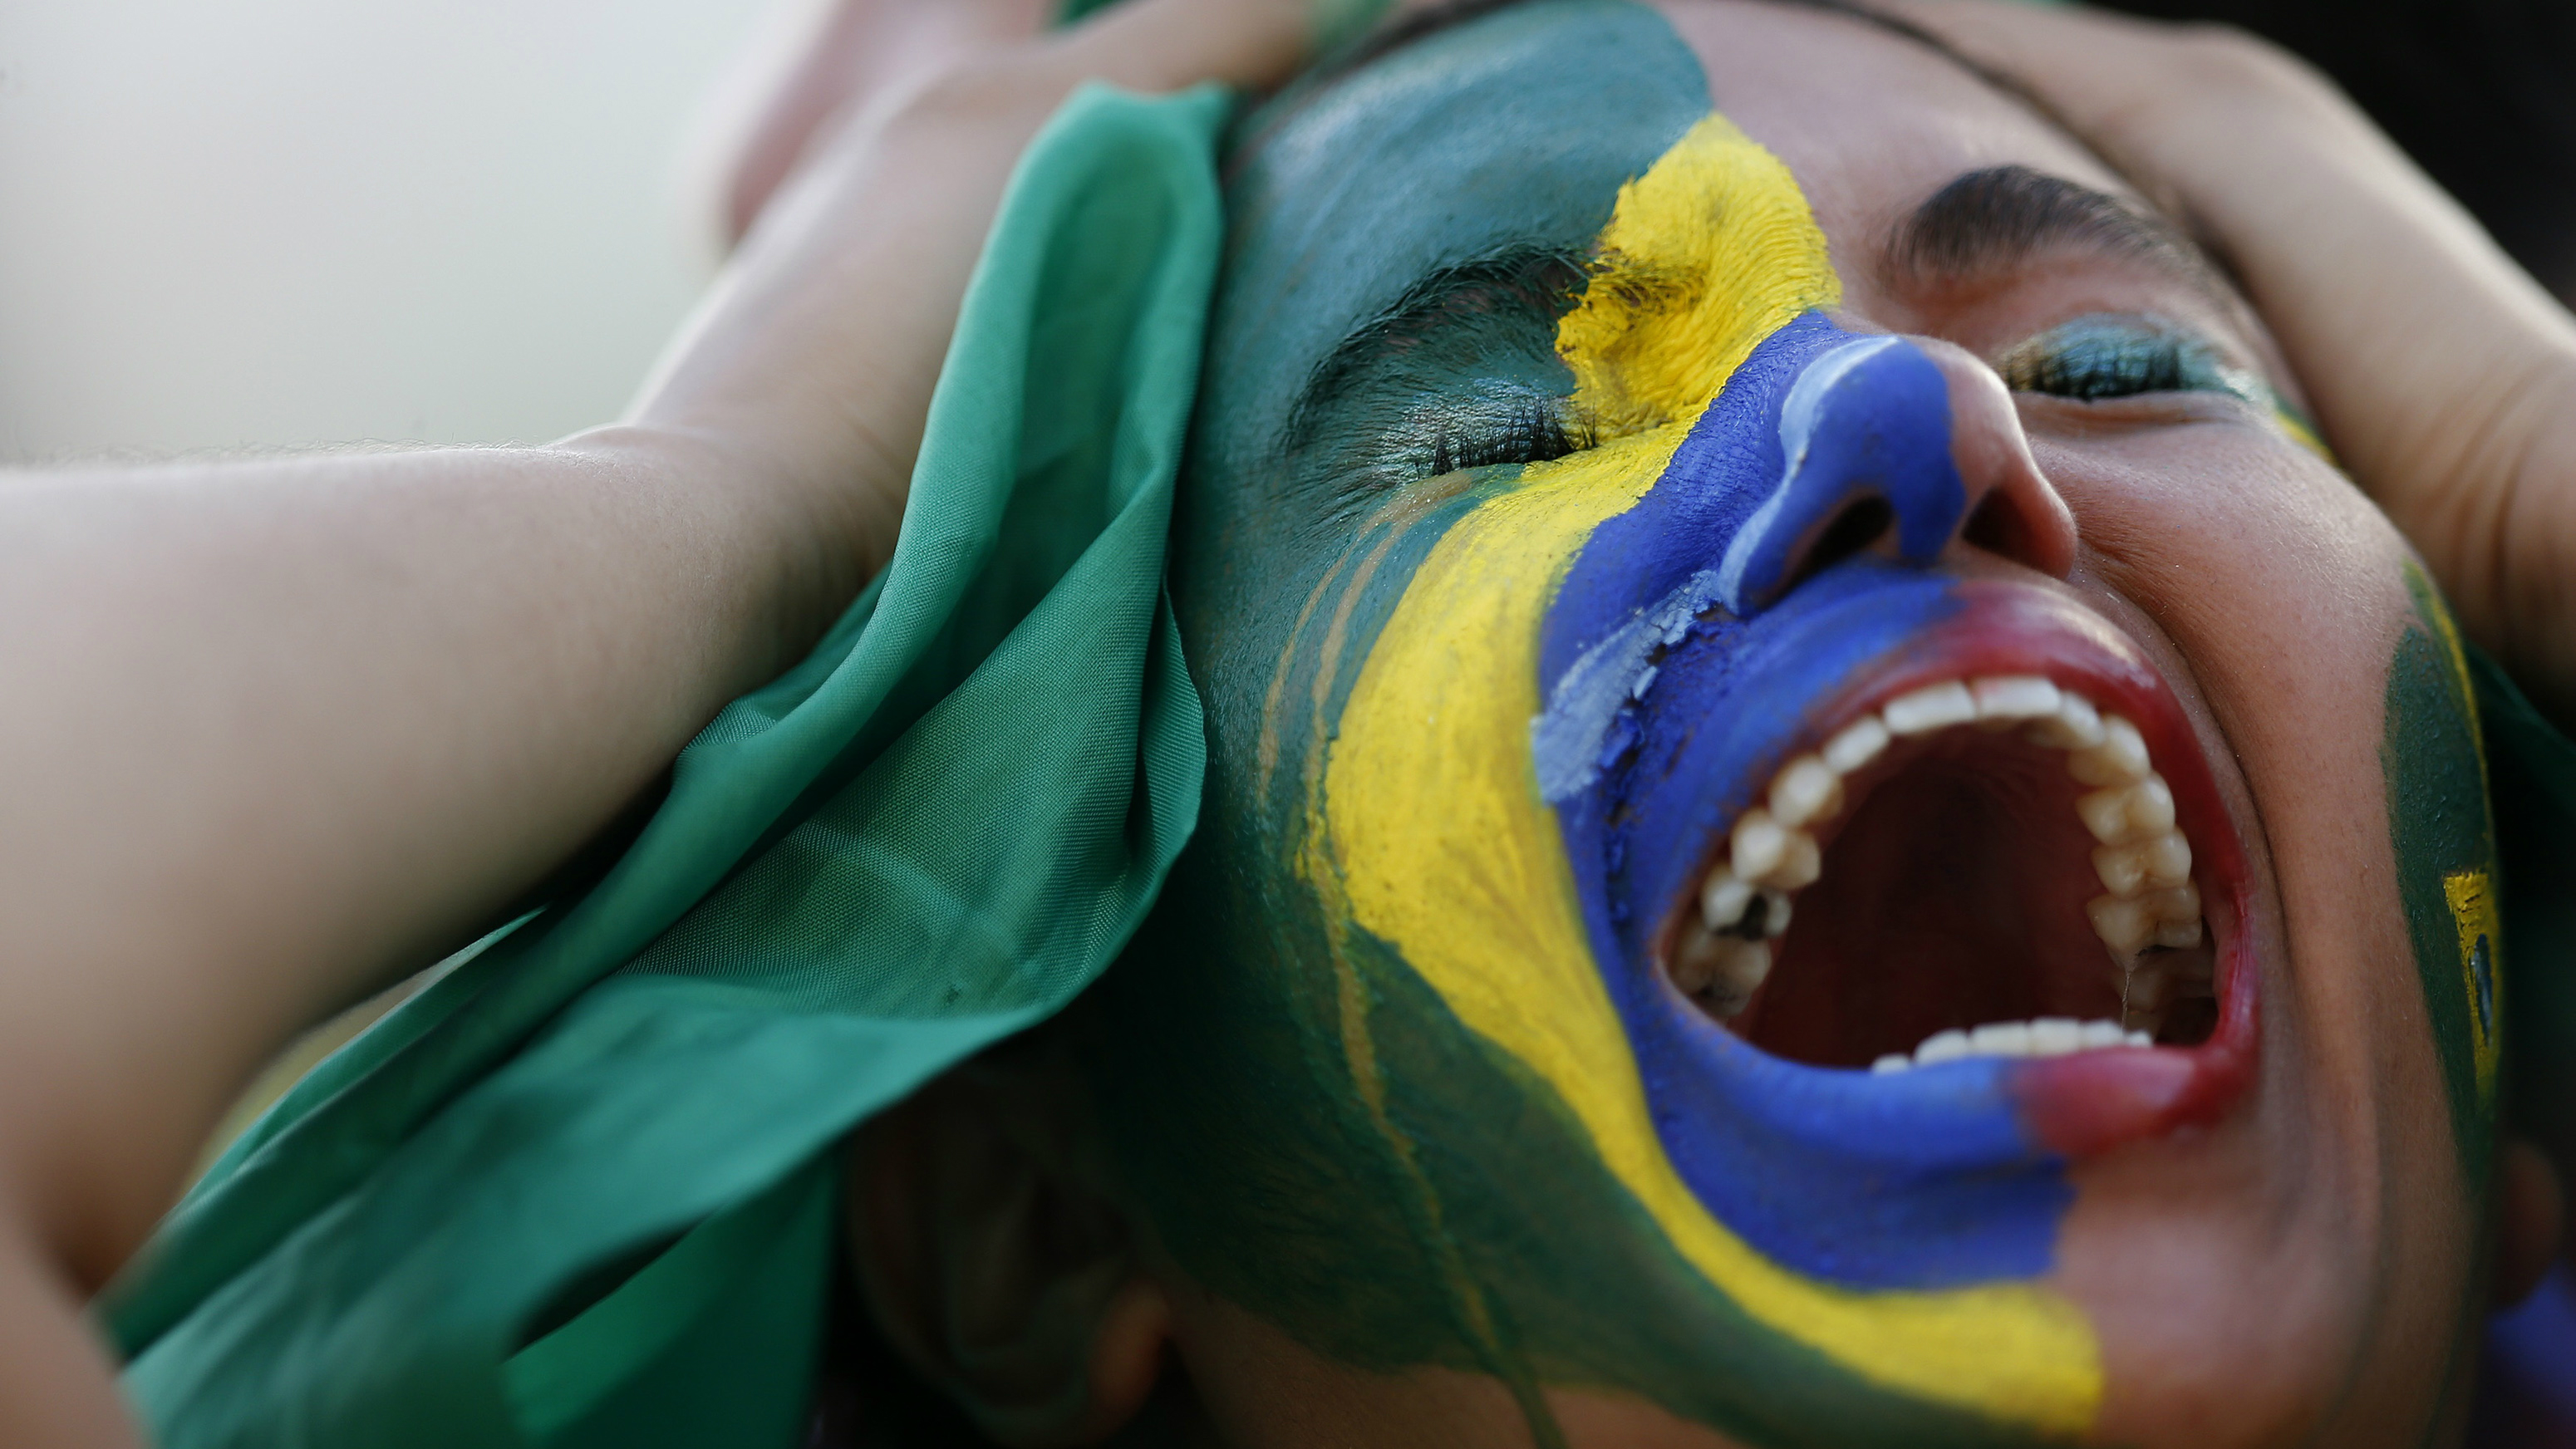 A sad Brazilian soccer fan.